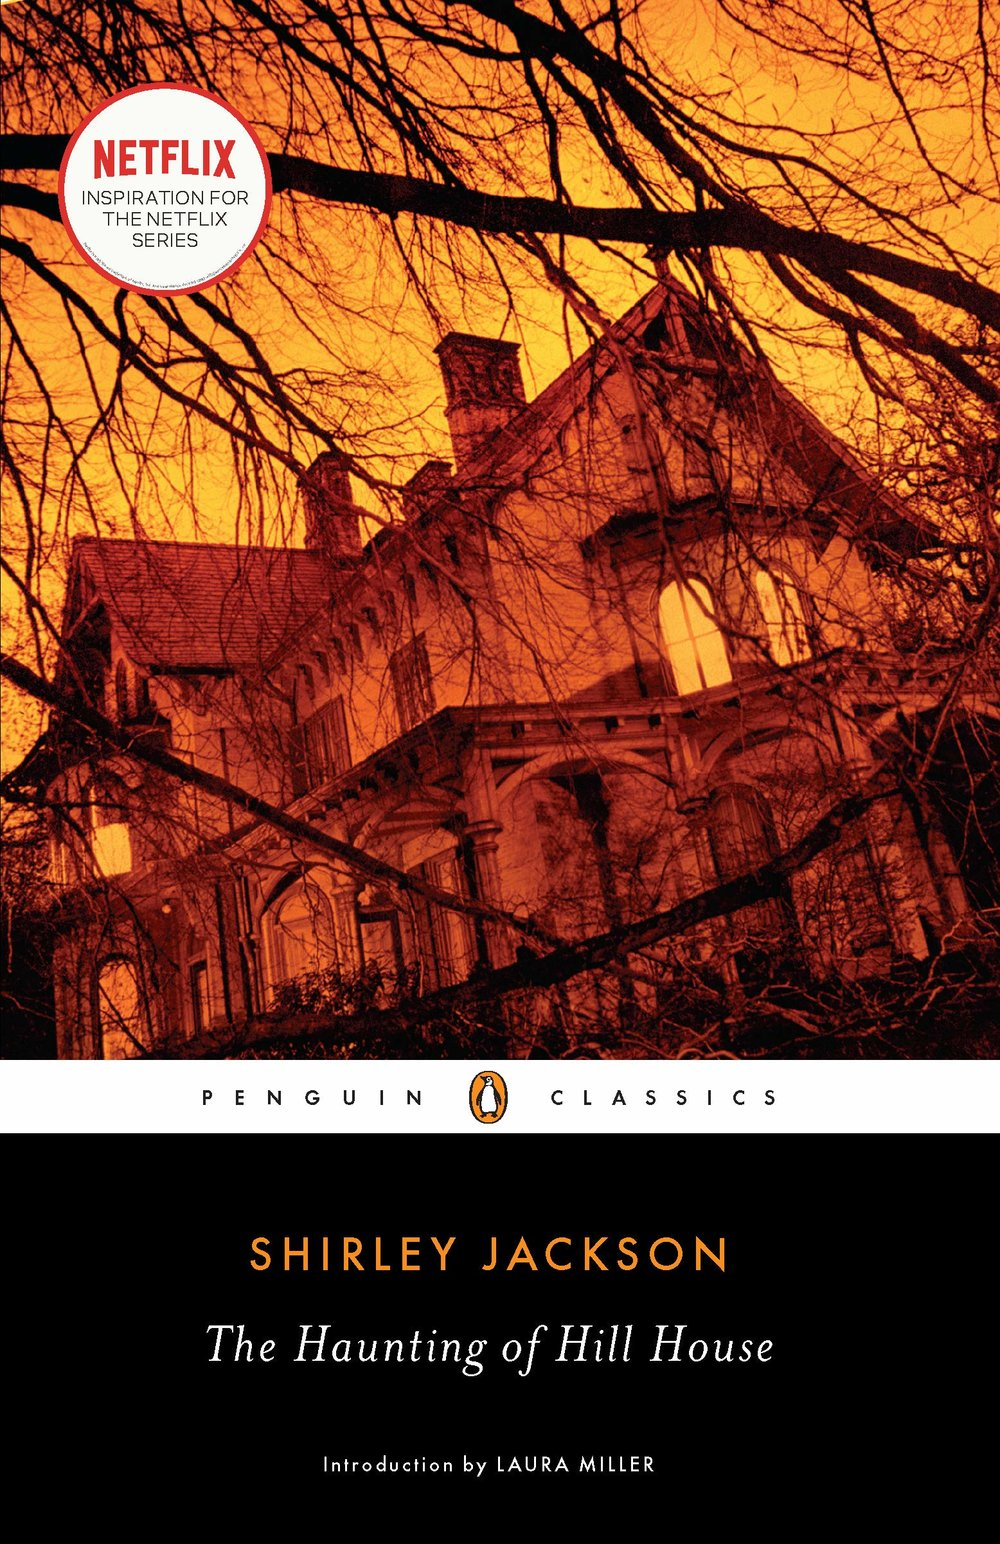 the-haunting-of-hill-house-book-cover.jpg